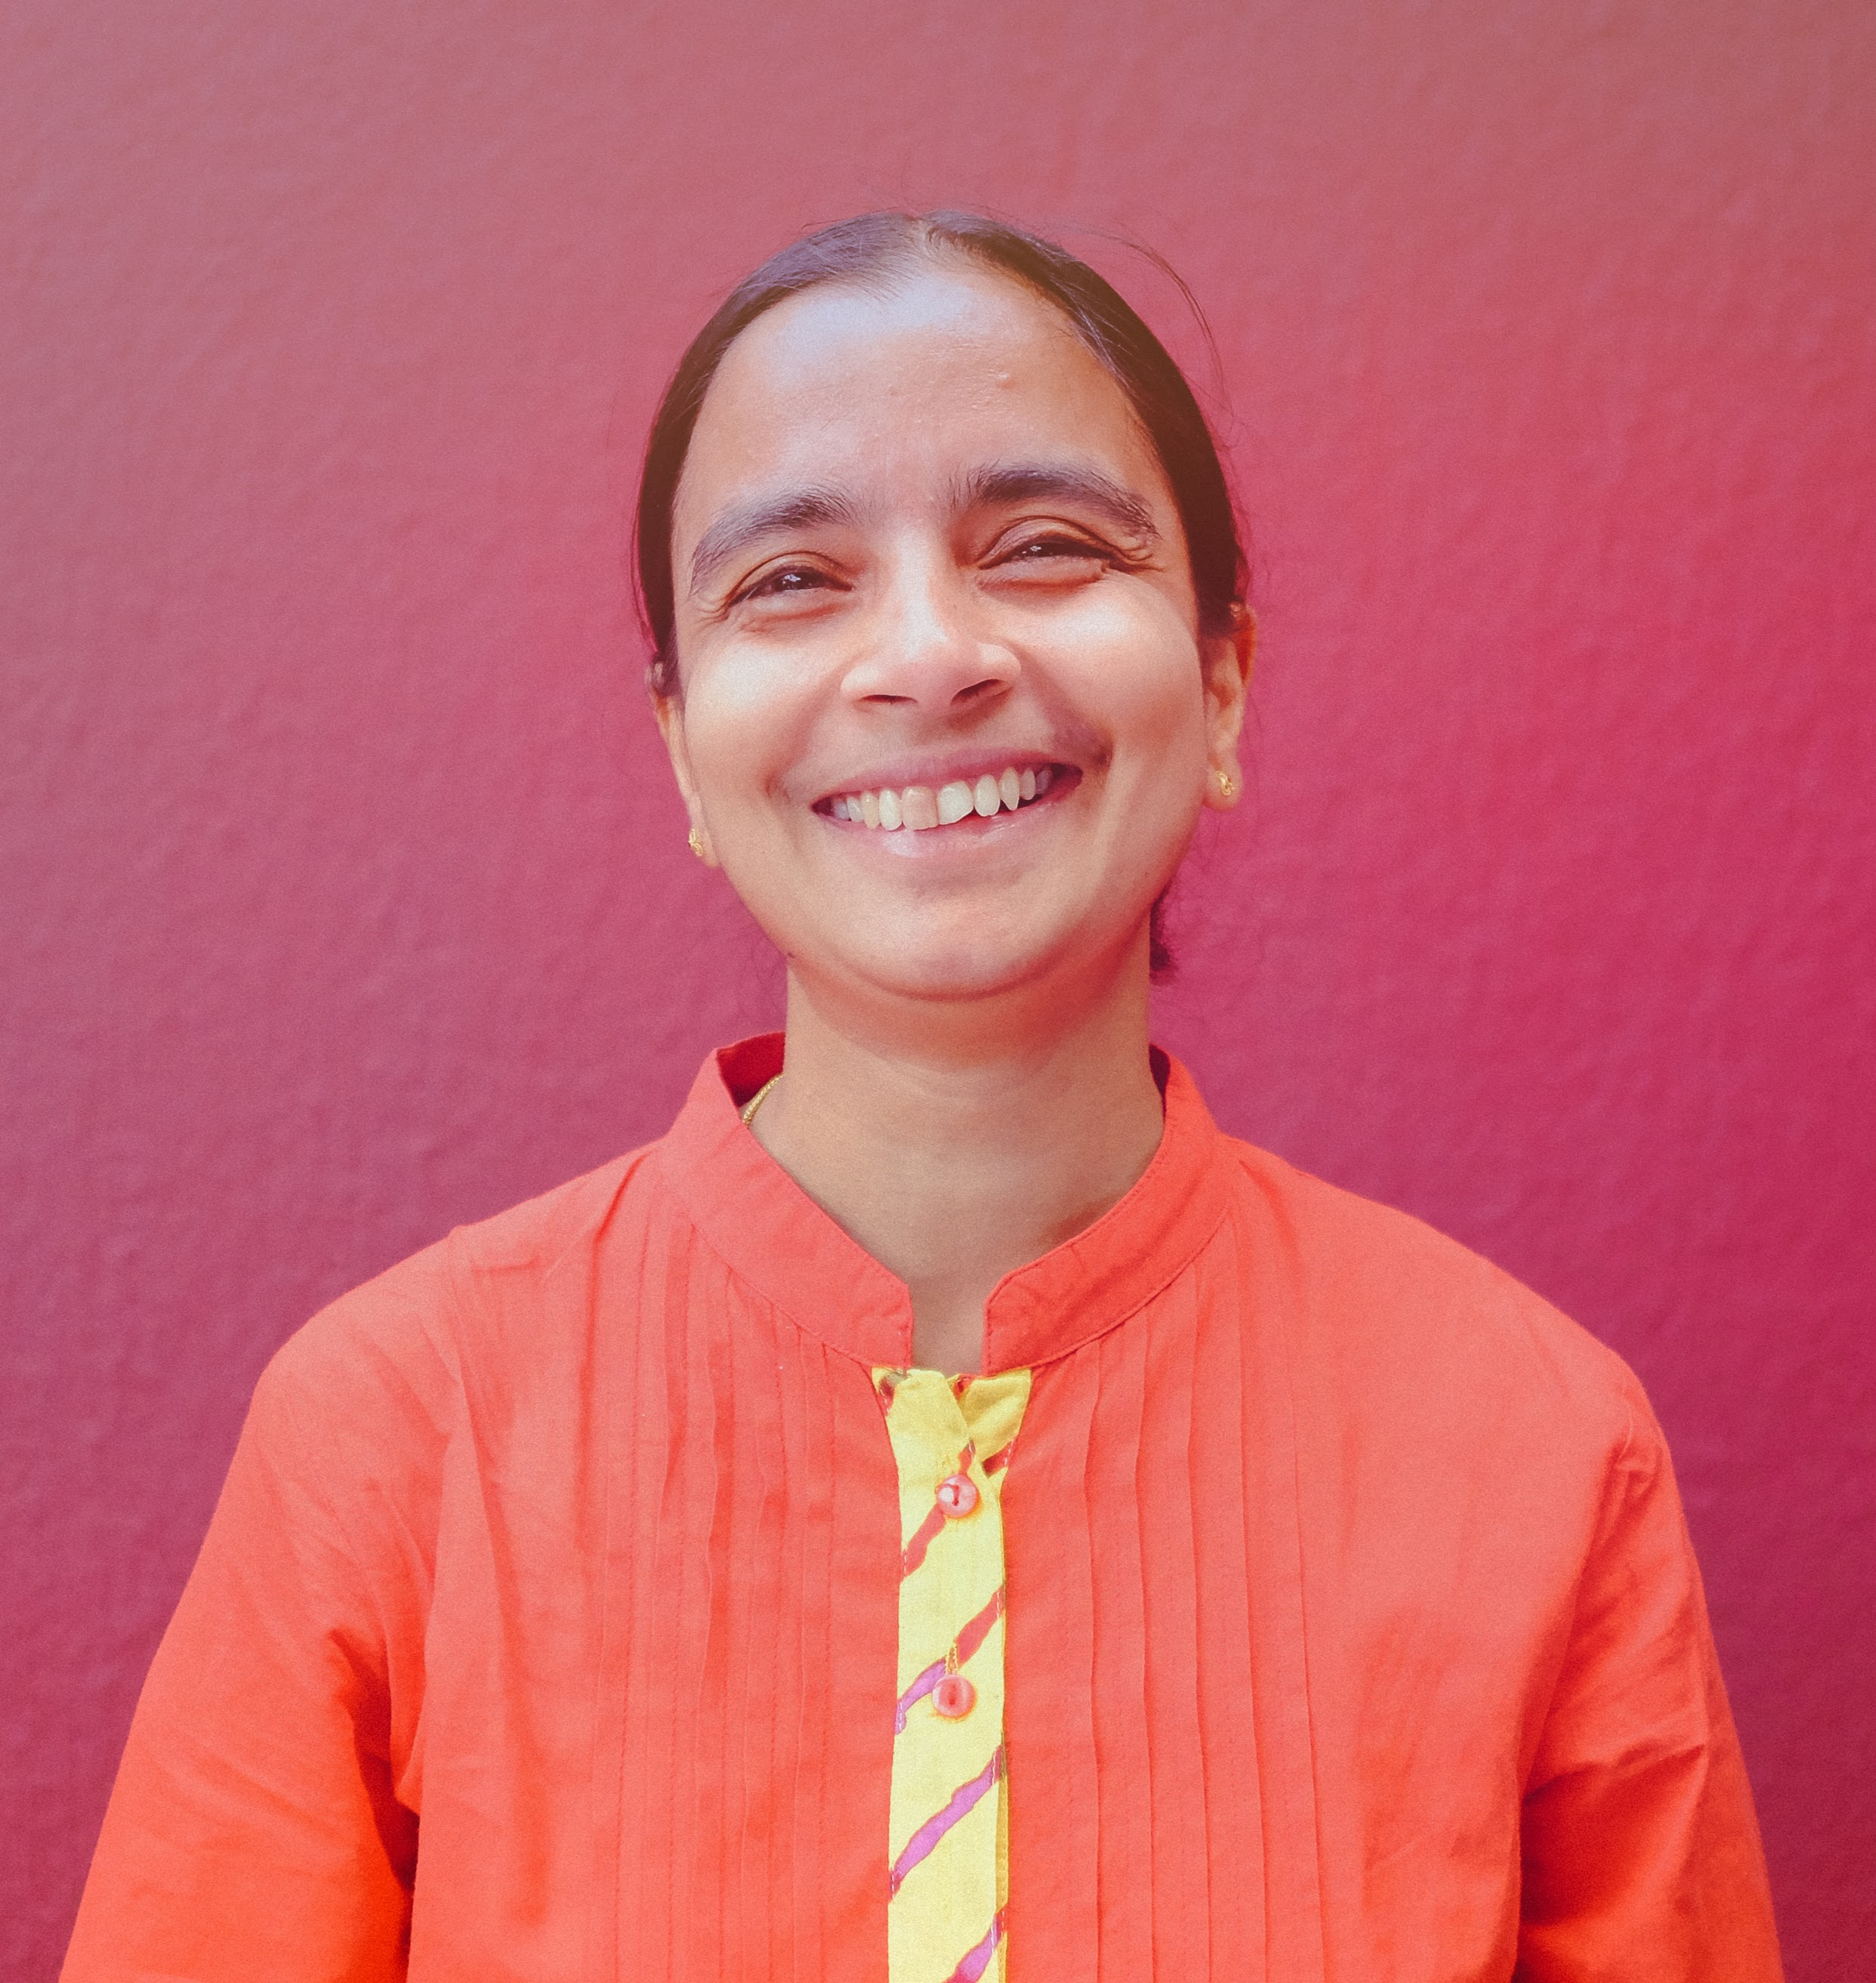 Leena S N, Co-founder and CTO at Good Karma